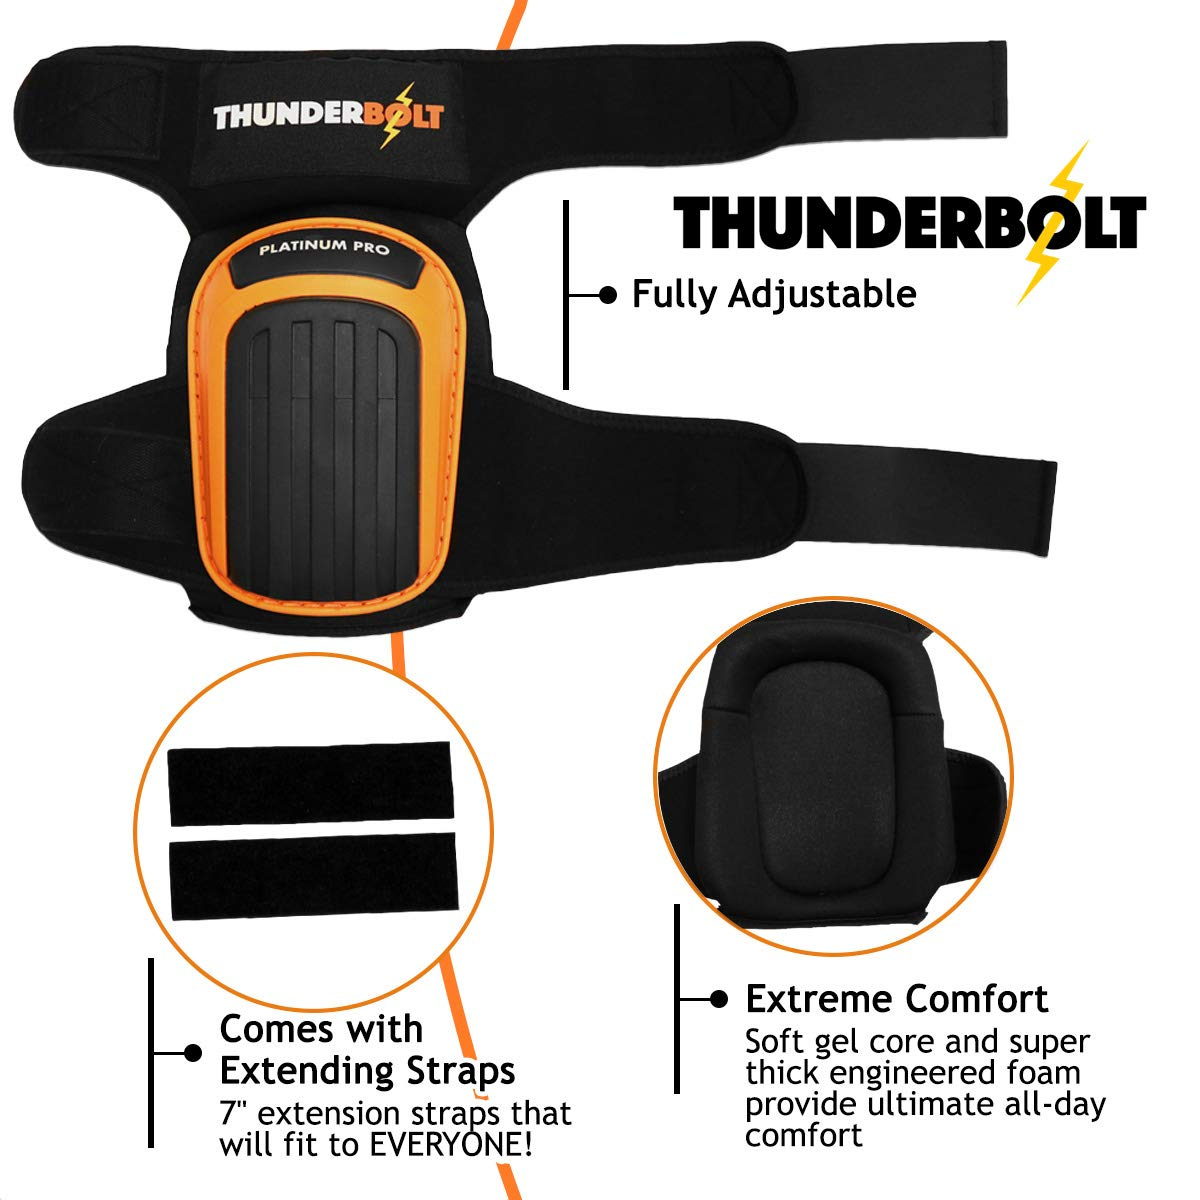 Knee Pads for Work by Thunderbolt with Heavy Duty Foam Cushioning and Gel Cushion Perfect for Construction, Flooring and Gardening with Adjustable Anti-Slip Straps by Thunderbolt (Image #5)